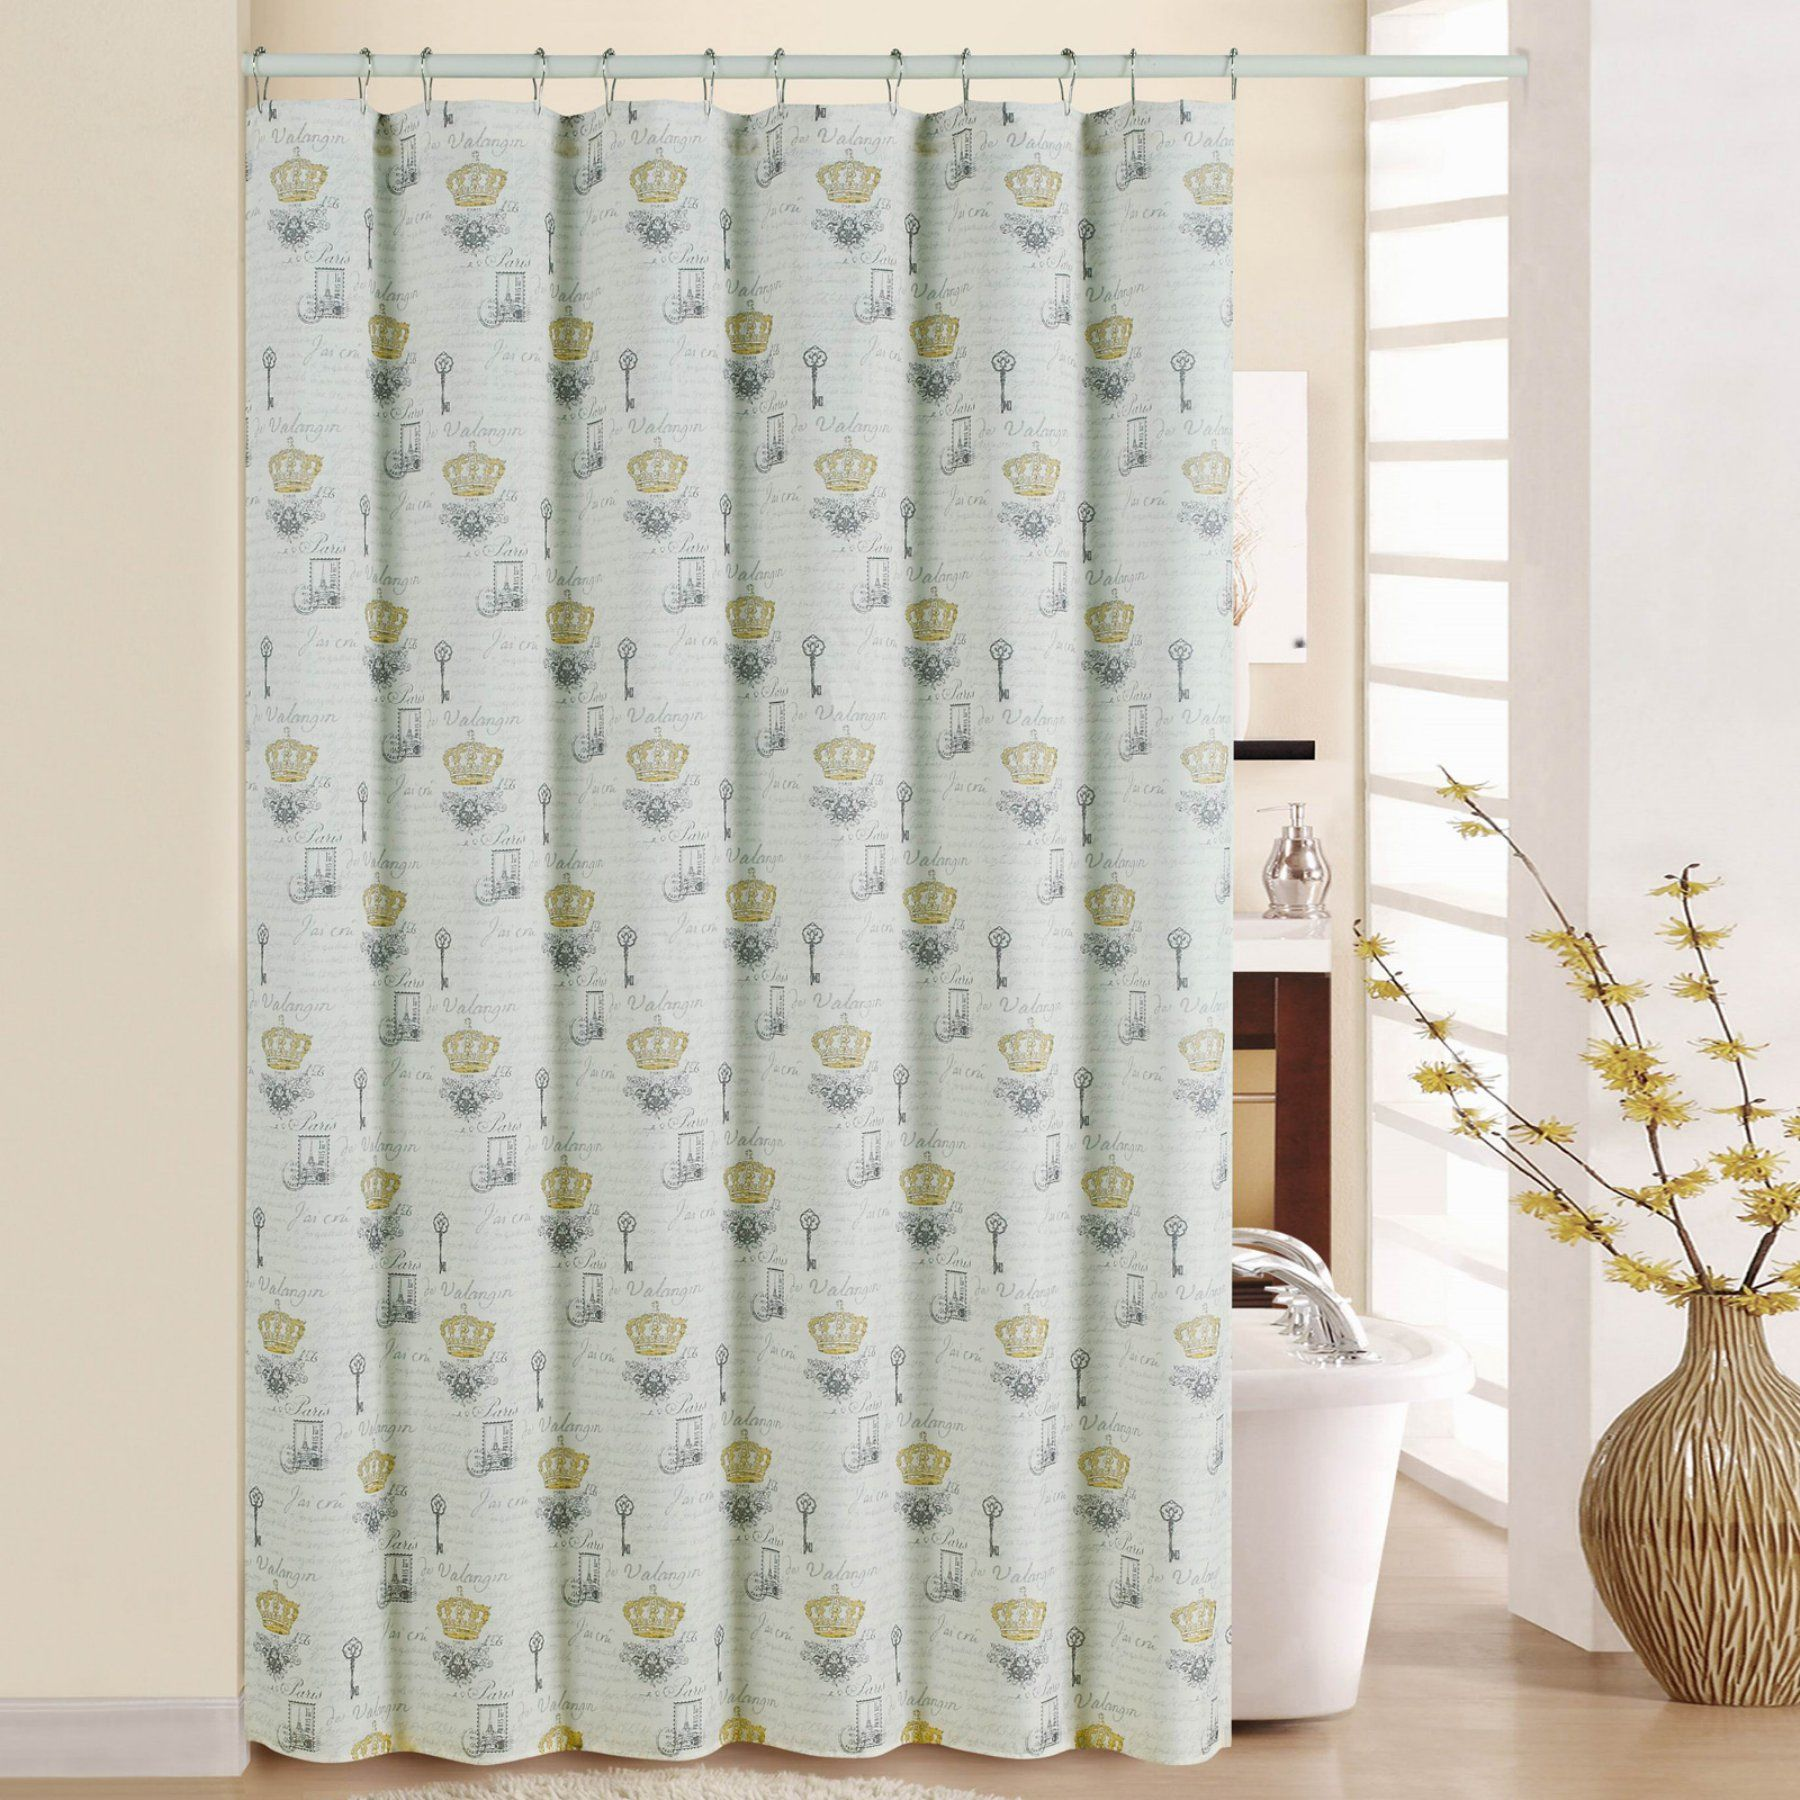 Waverly Paris Notebook Shower Curtain With Rings Curtains With